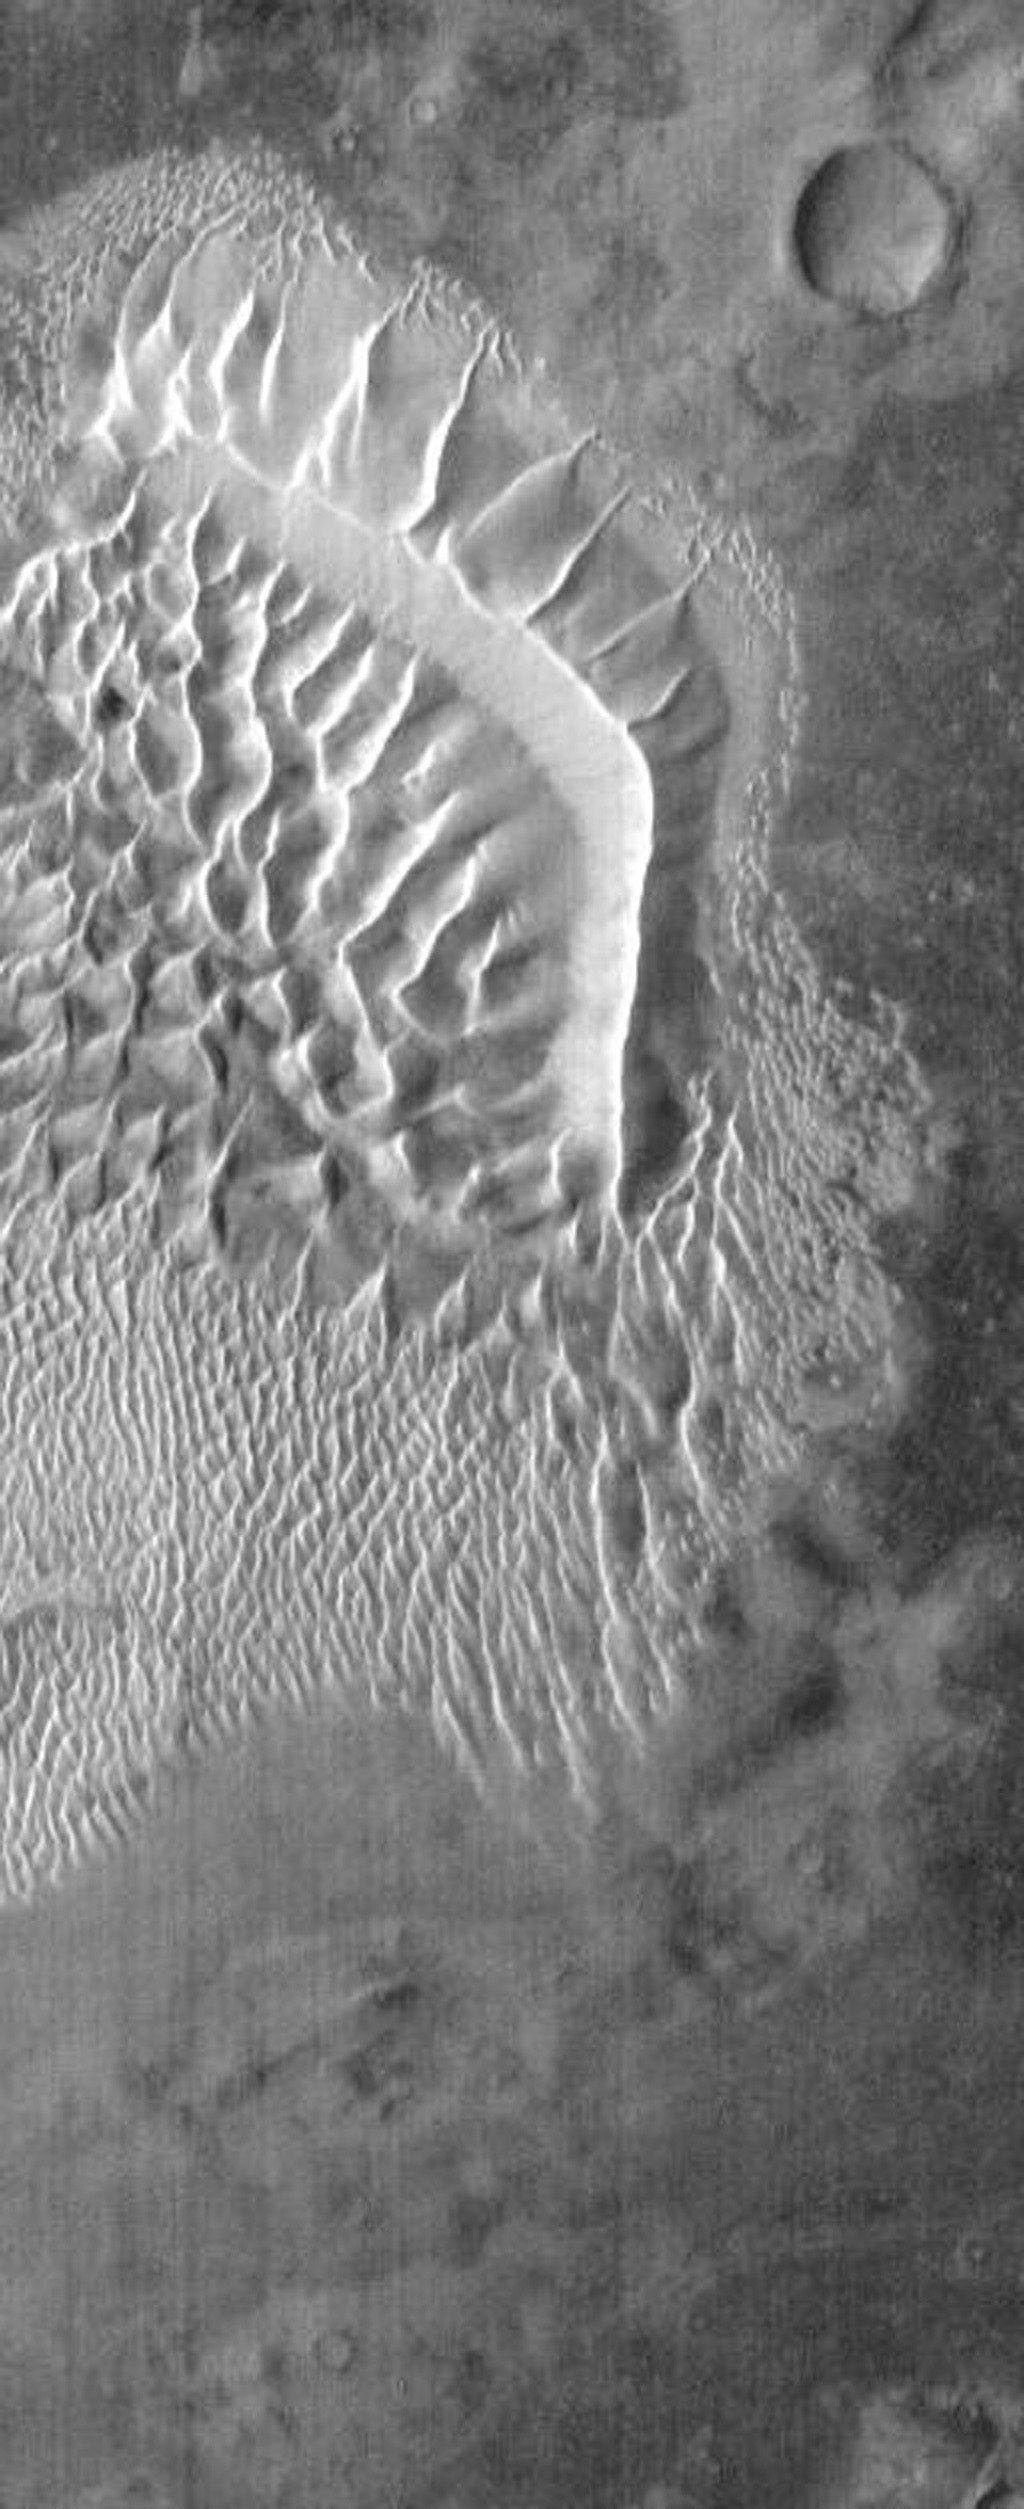 This image from NASA's Mars Odyssey spacecraft shows the main dune field on the floor of Russell Crater on Mars. The dunes are bright in this daytime image because they are warm. The sand material is dark.